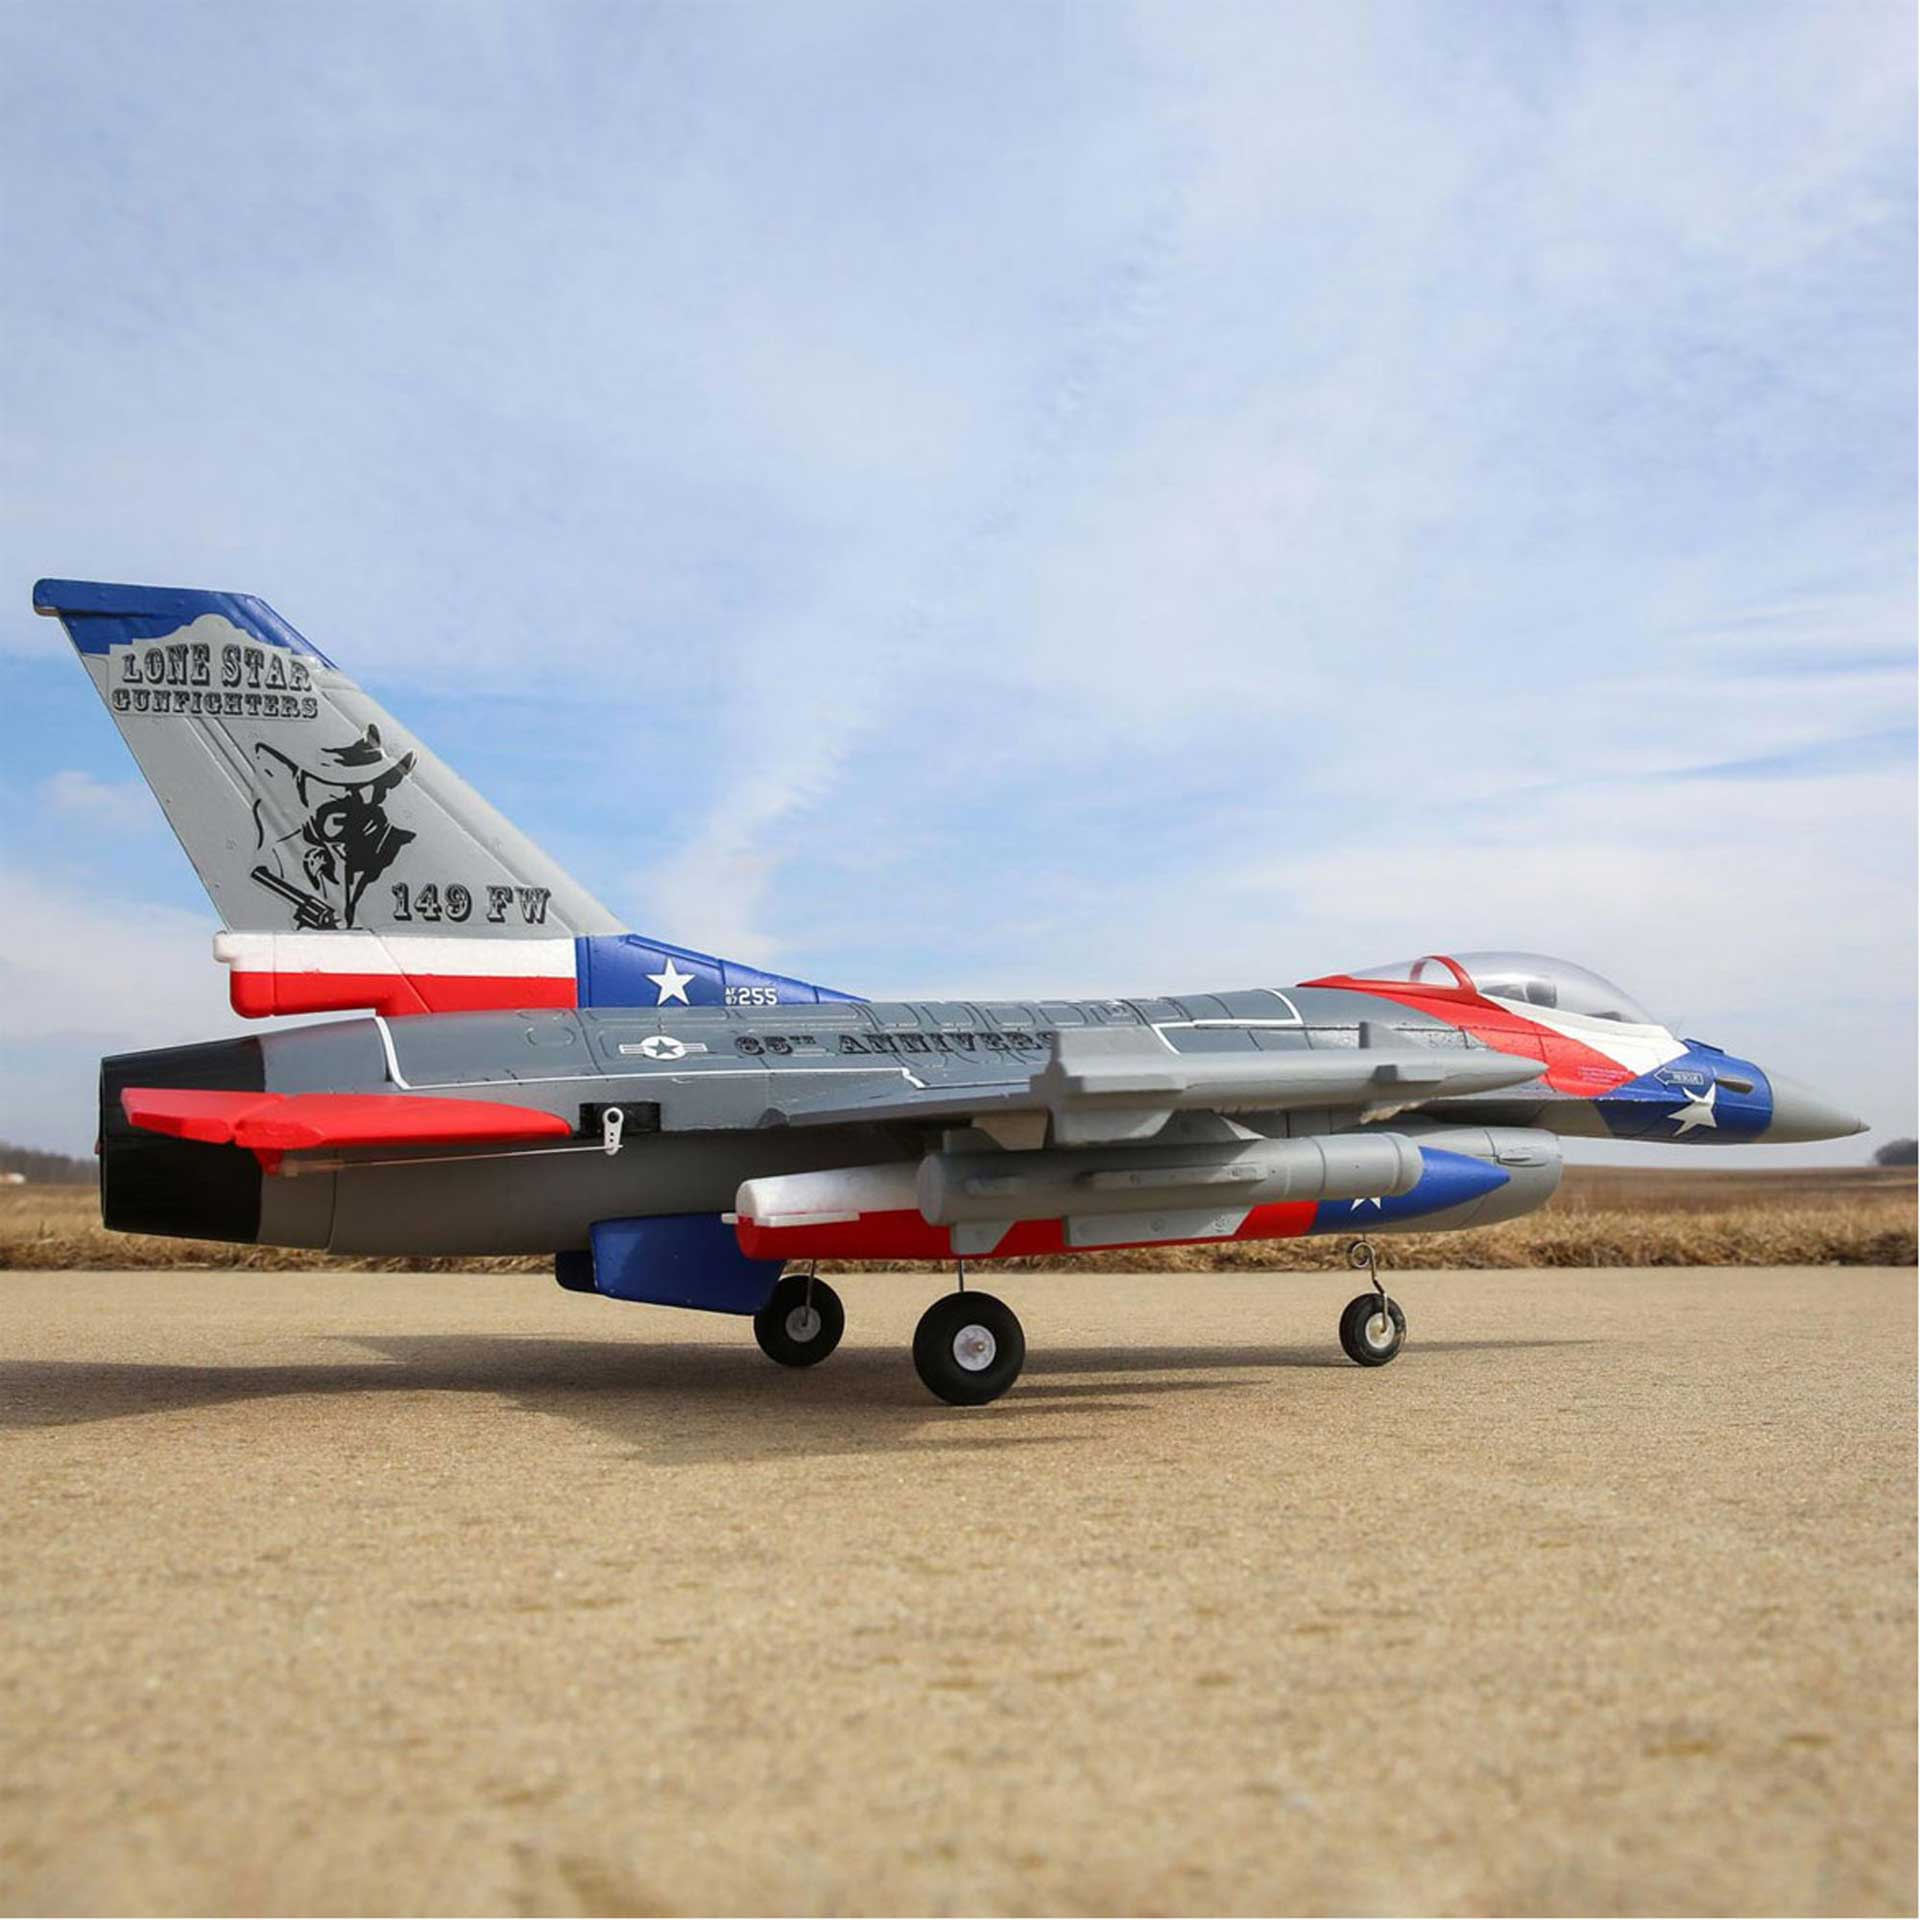 E-Flite F-16 FALCON 64MM EDF BNF BASIC JET WITH AS3X AND SAFE SELECT TECHNOLOGY